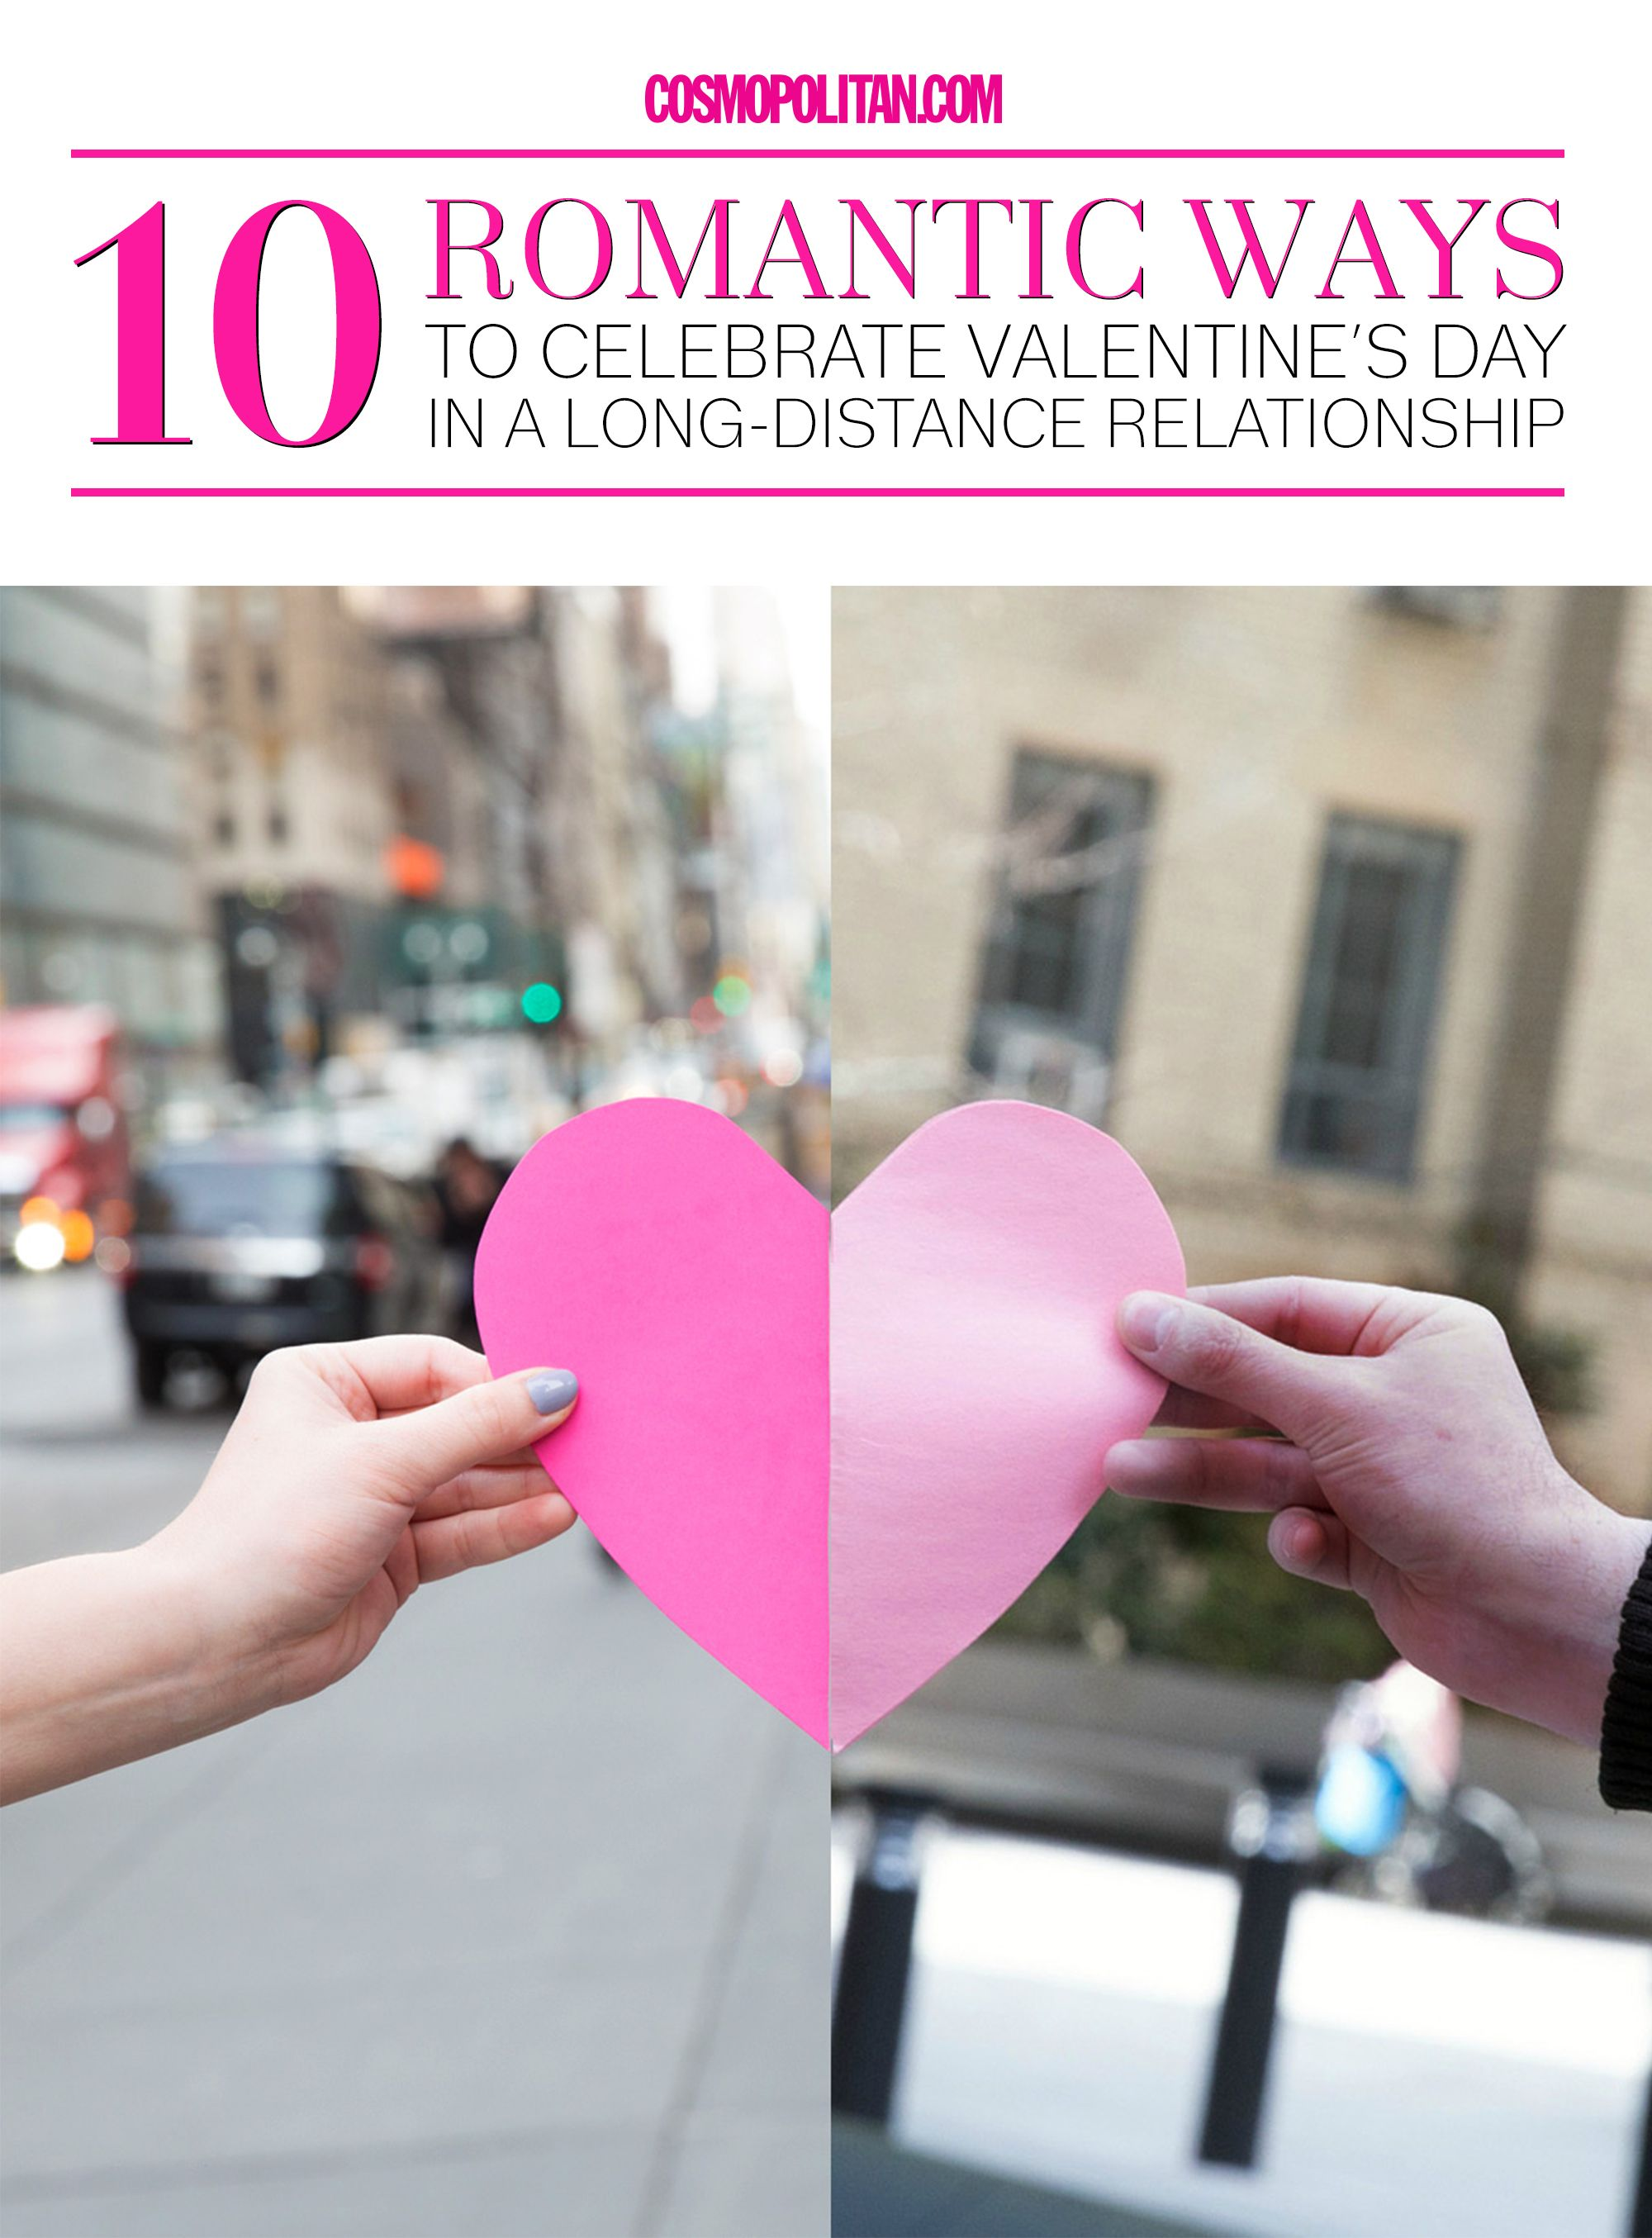 Top 20 gift lover for February 14